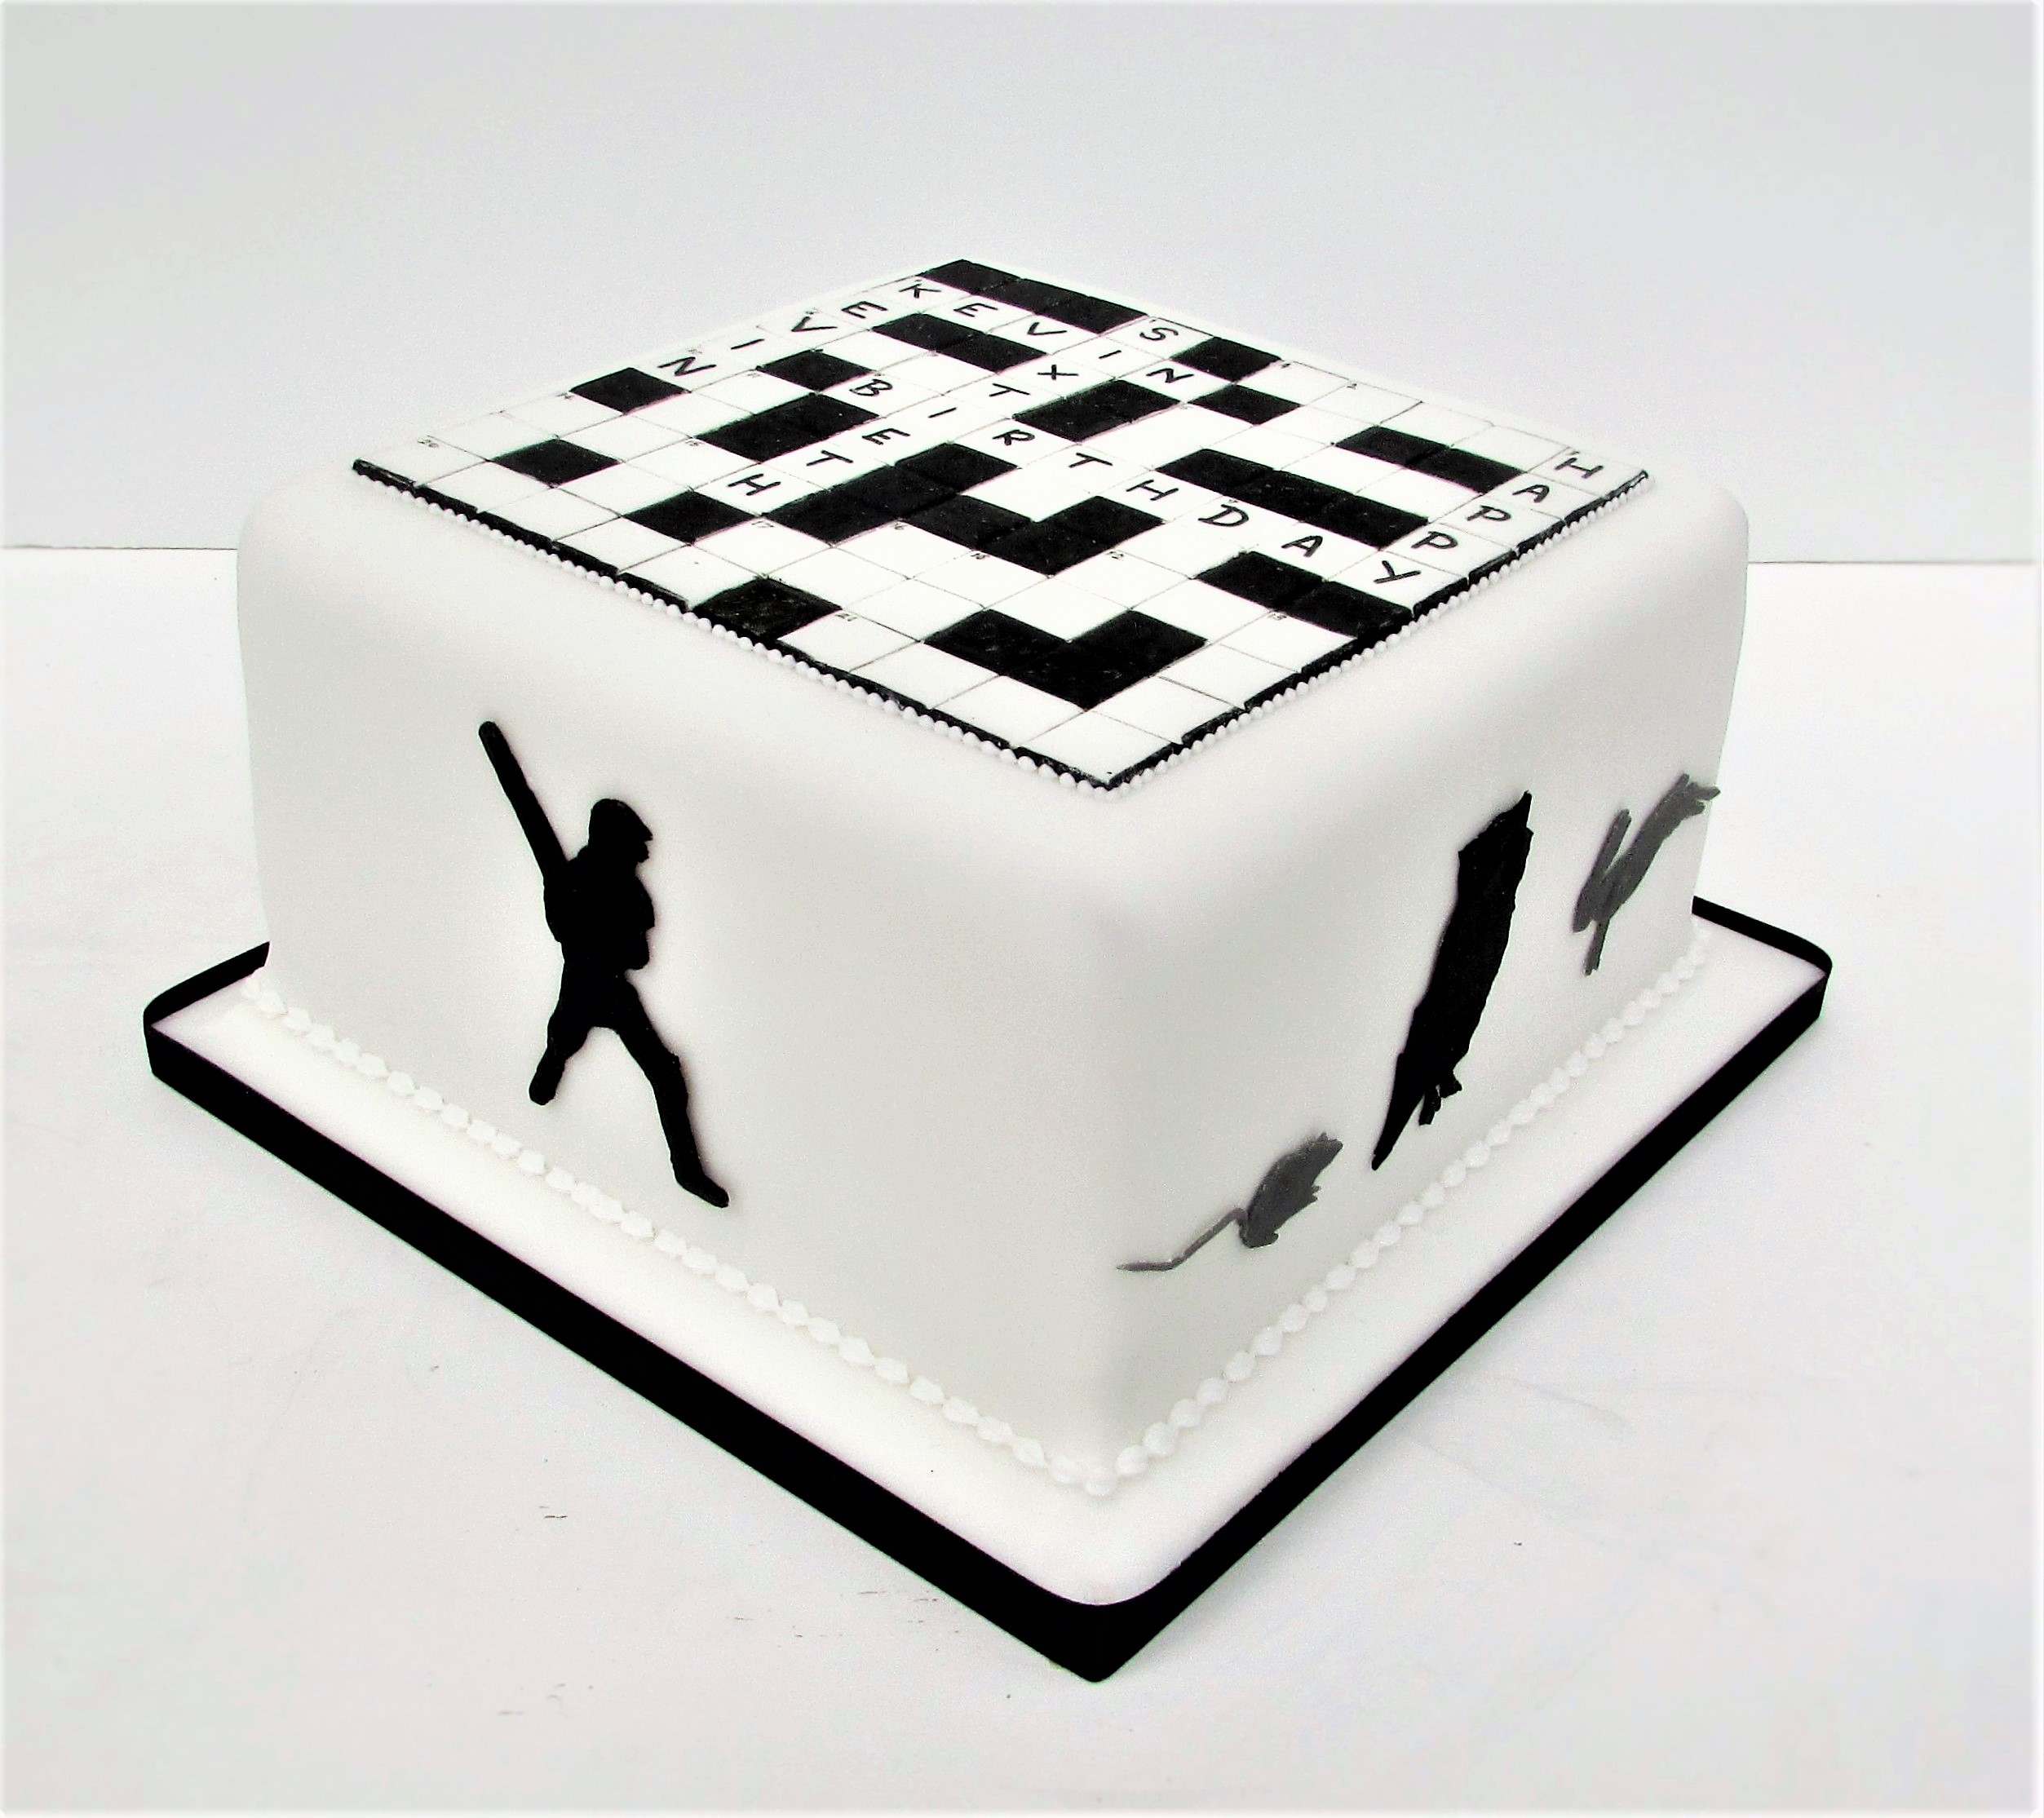 Crossword party cake with silhouette figures